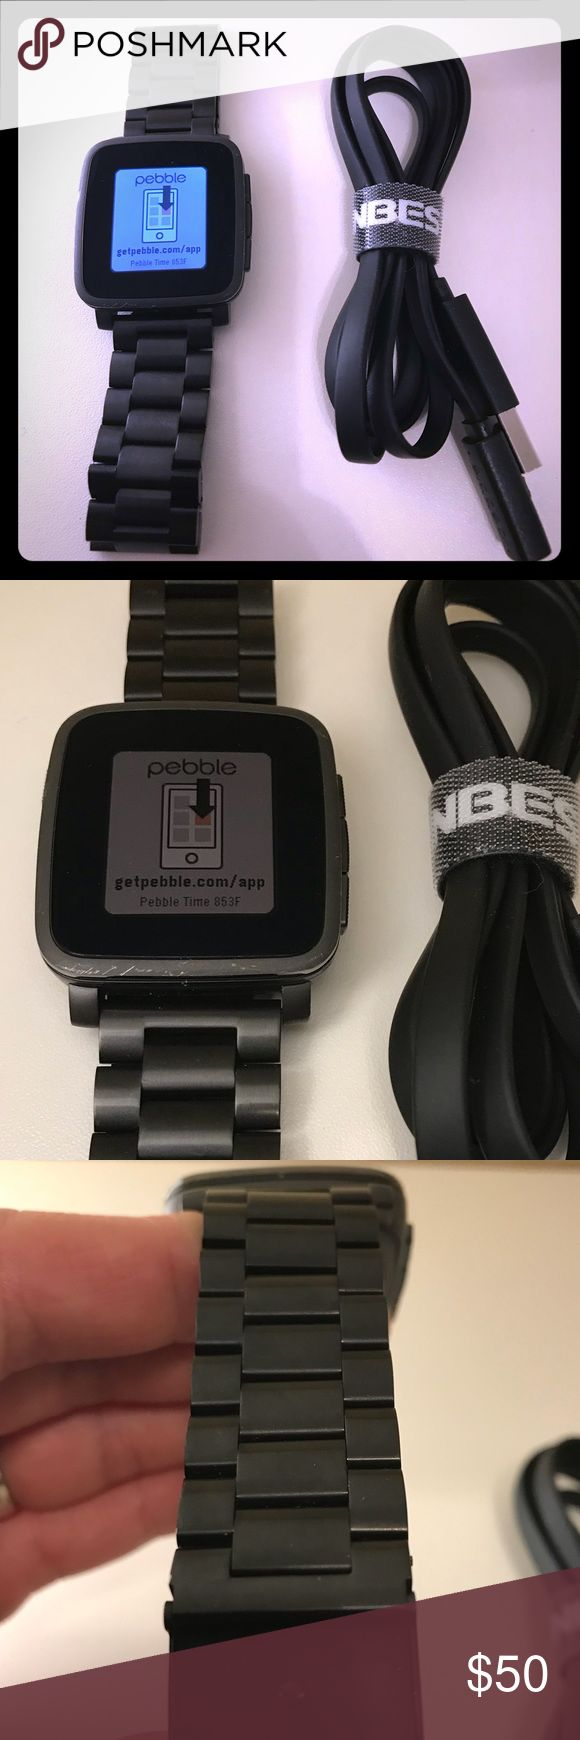 Pebble Steel Watch,Matte Blk, Stainless Steel Band Pebble time steel is a smart watch compatible with iOS and Android. I used it for iOS and it has some limitations. I used mainly for receiving text msg and email. Connects via Bluetooth. Battery lasts up to 10 days. It has color. Includes Pebble health, Built-in activity and sleep tracker and many more. You can download specific pebble apps from the pebble app itself (games, watch faces...etc). Tough, 2.5D glass display. USB Magnetic…